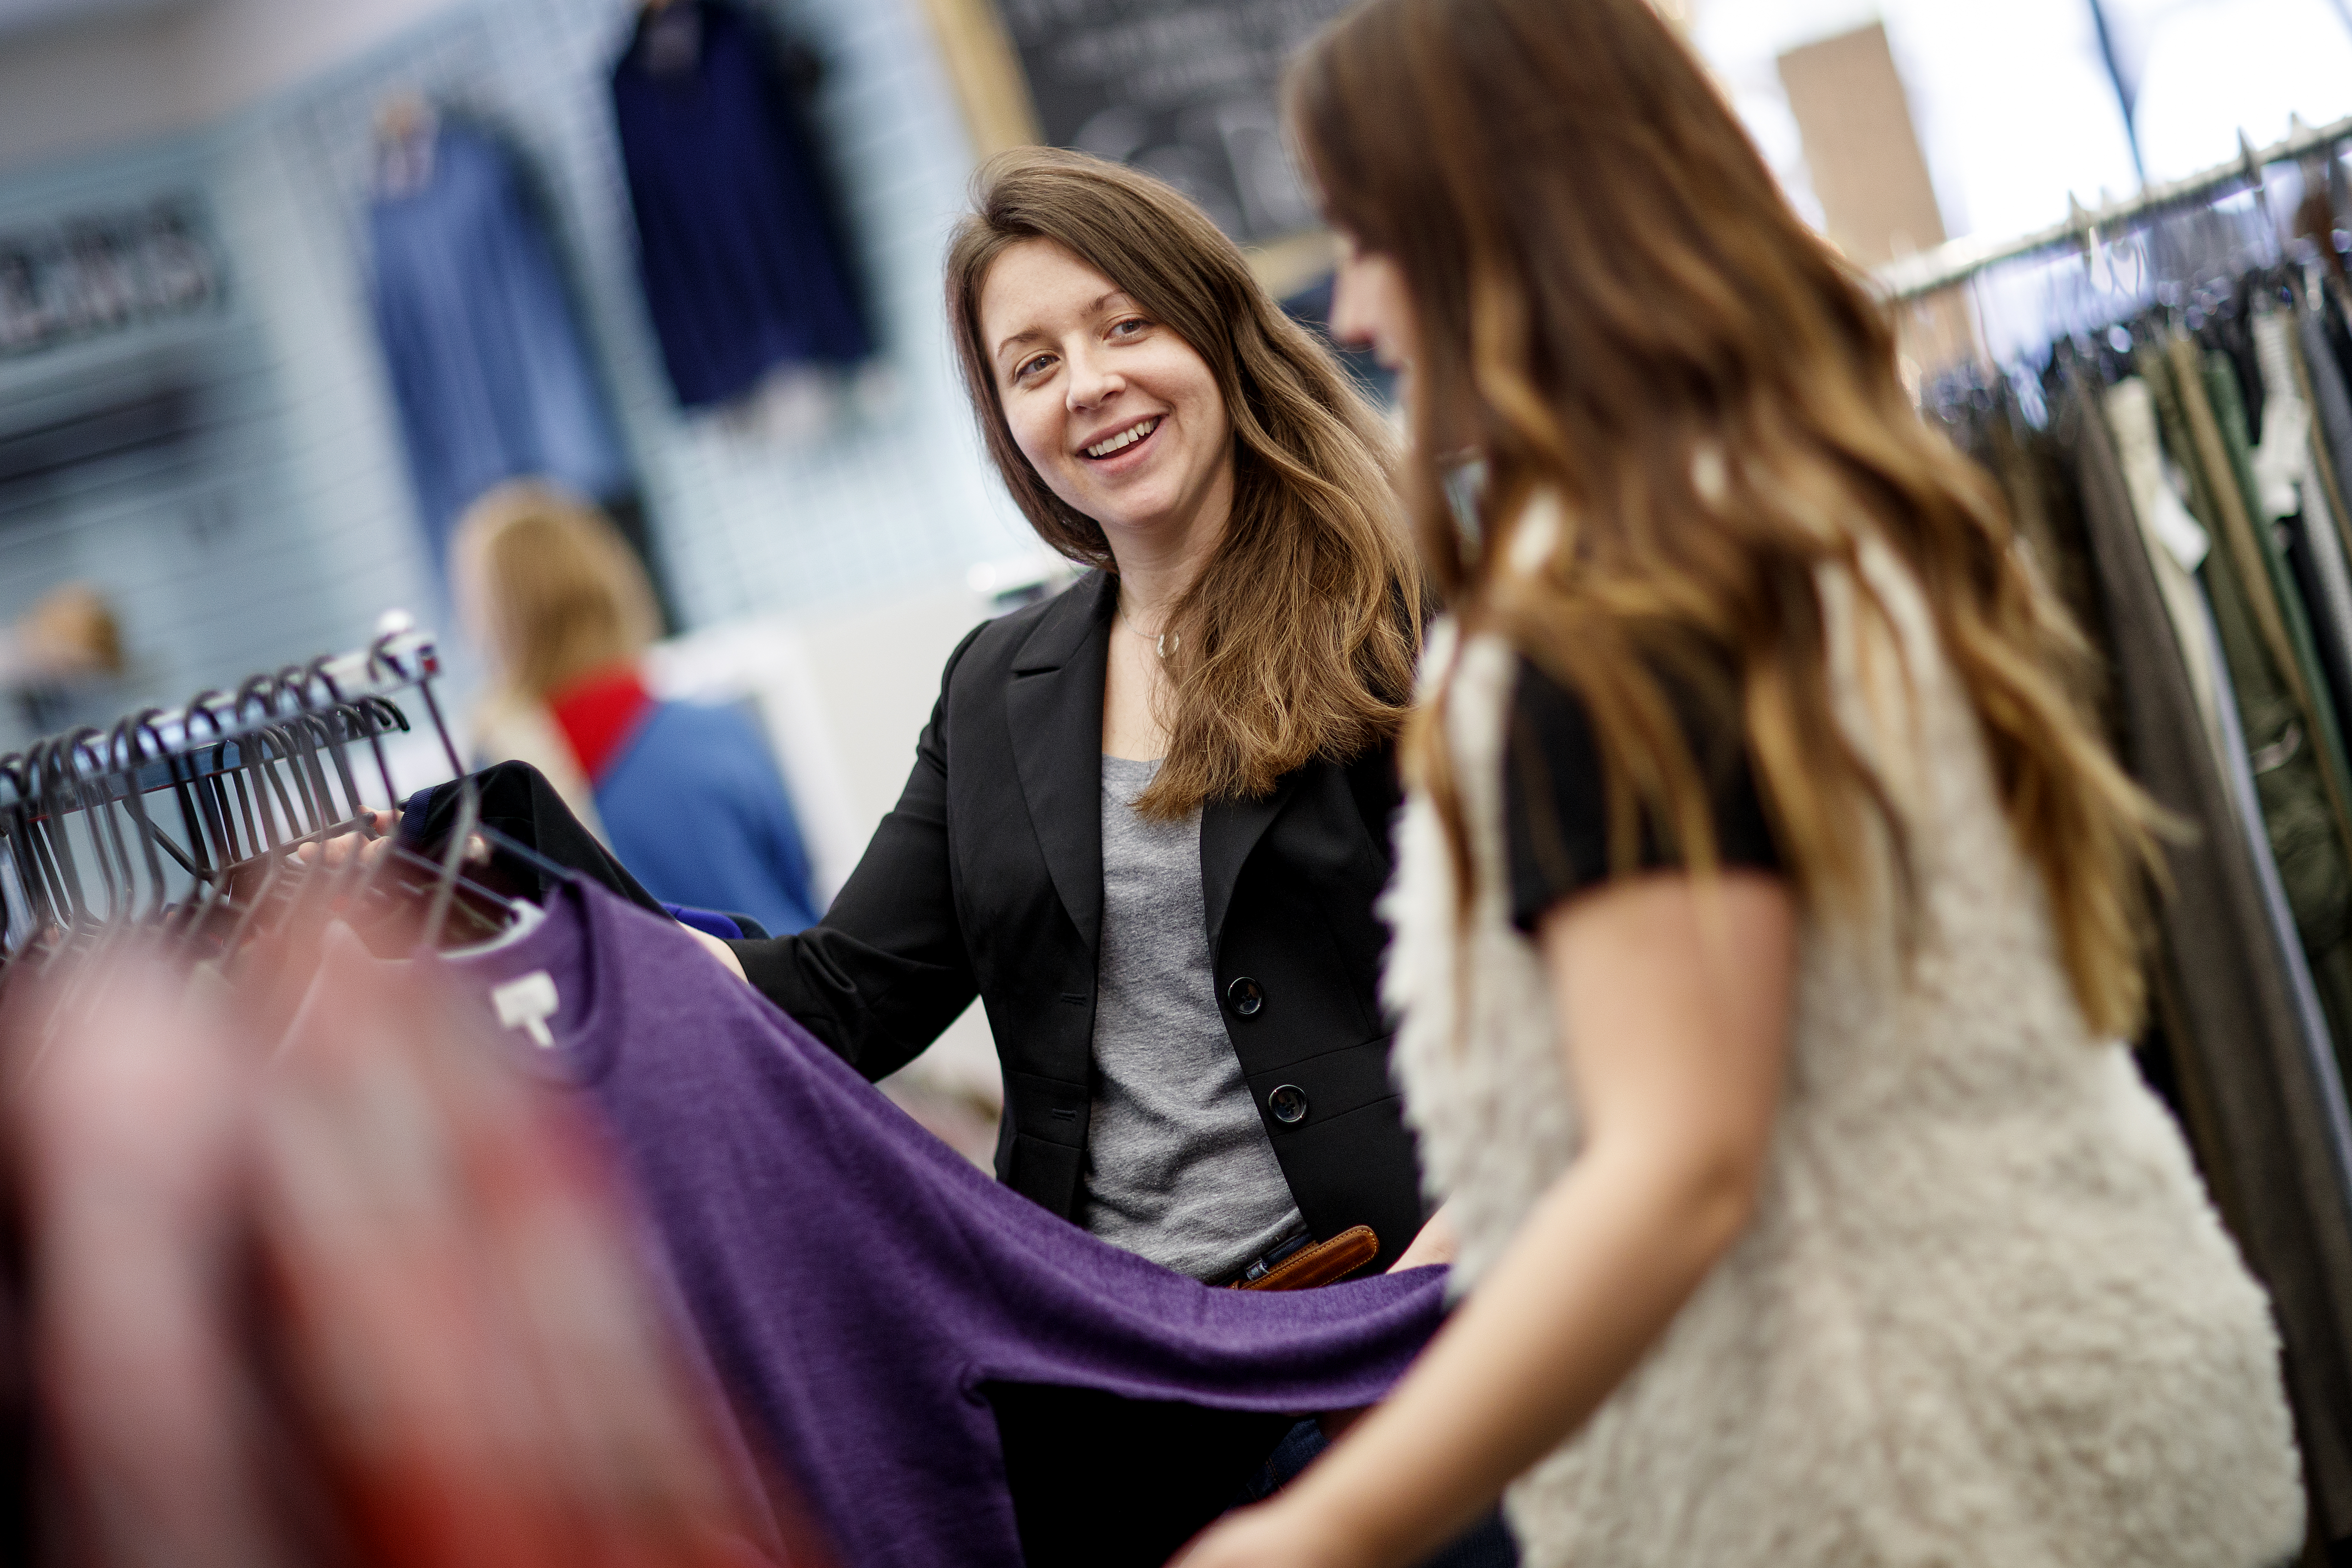 Textiles Merchandising Fashion Design College Of Education And Human Sciences